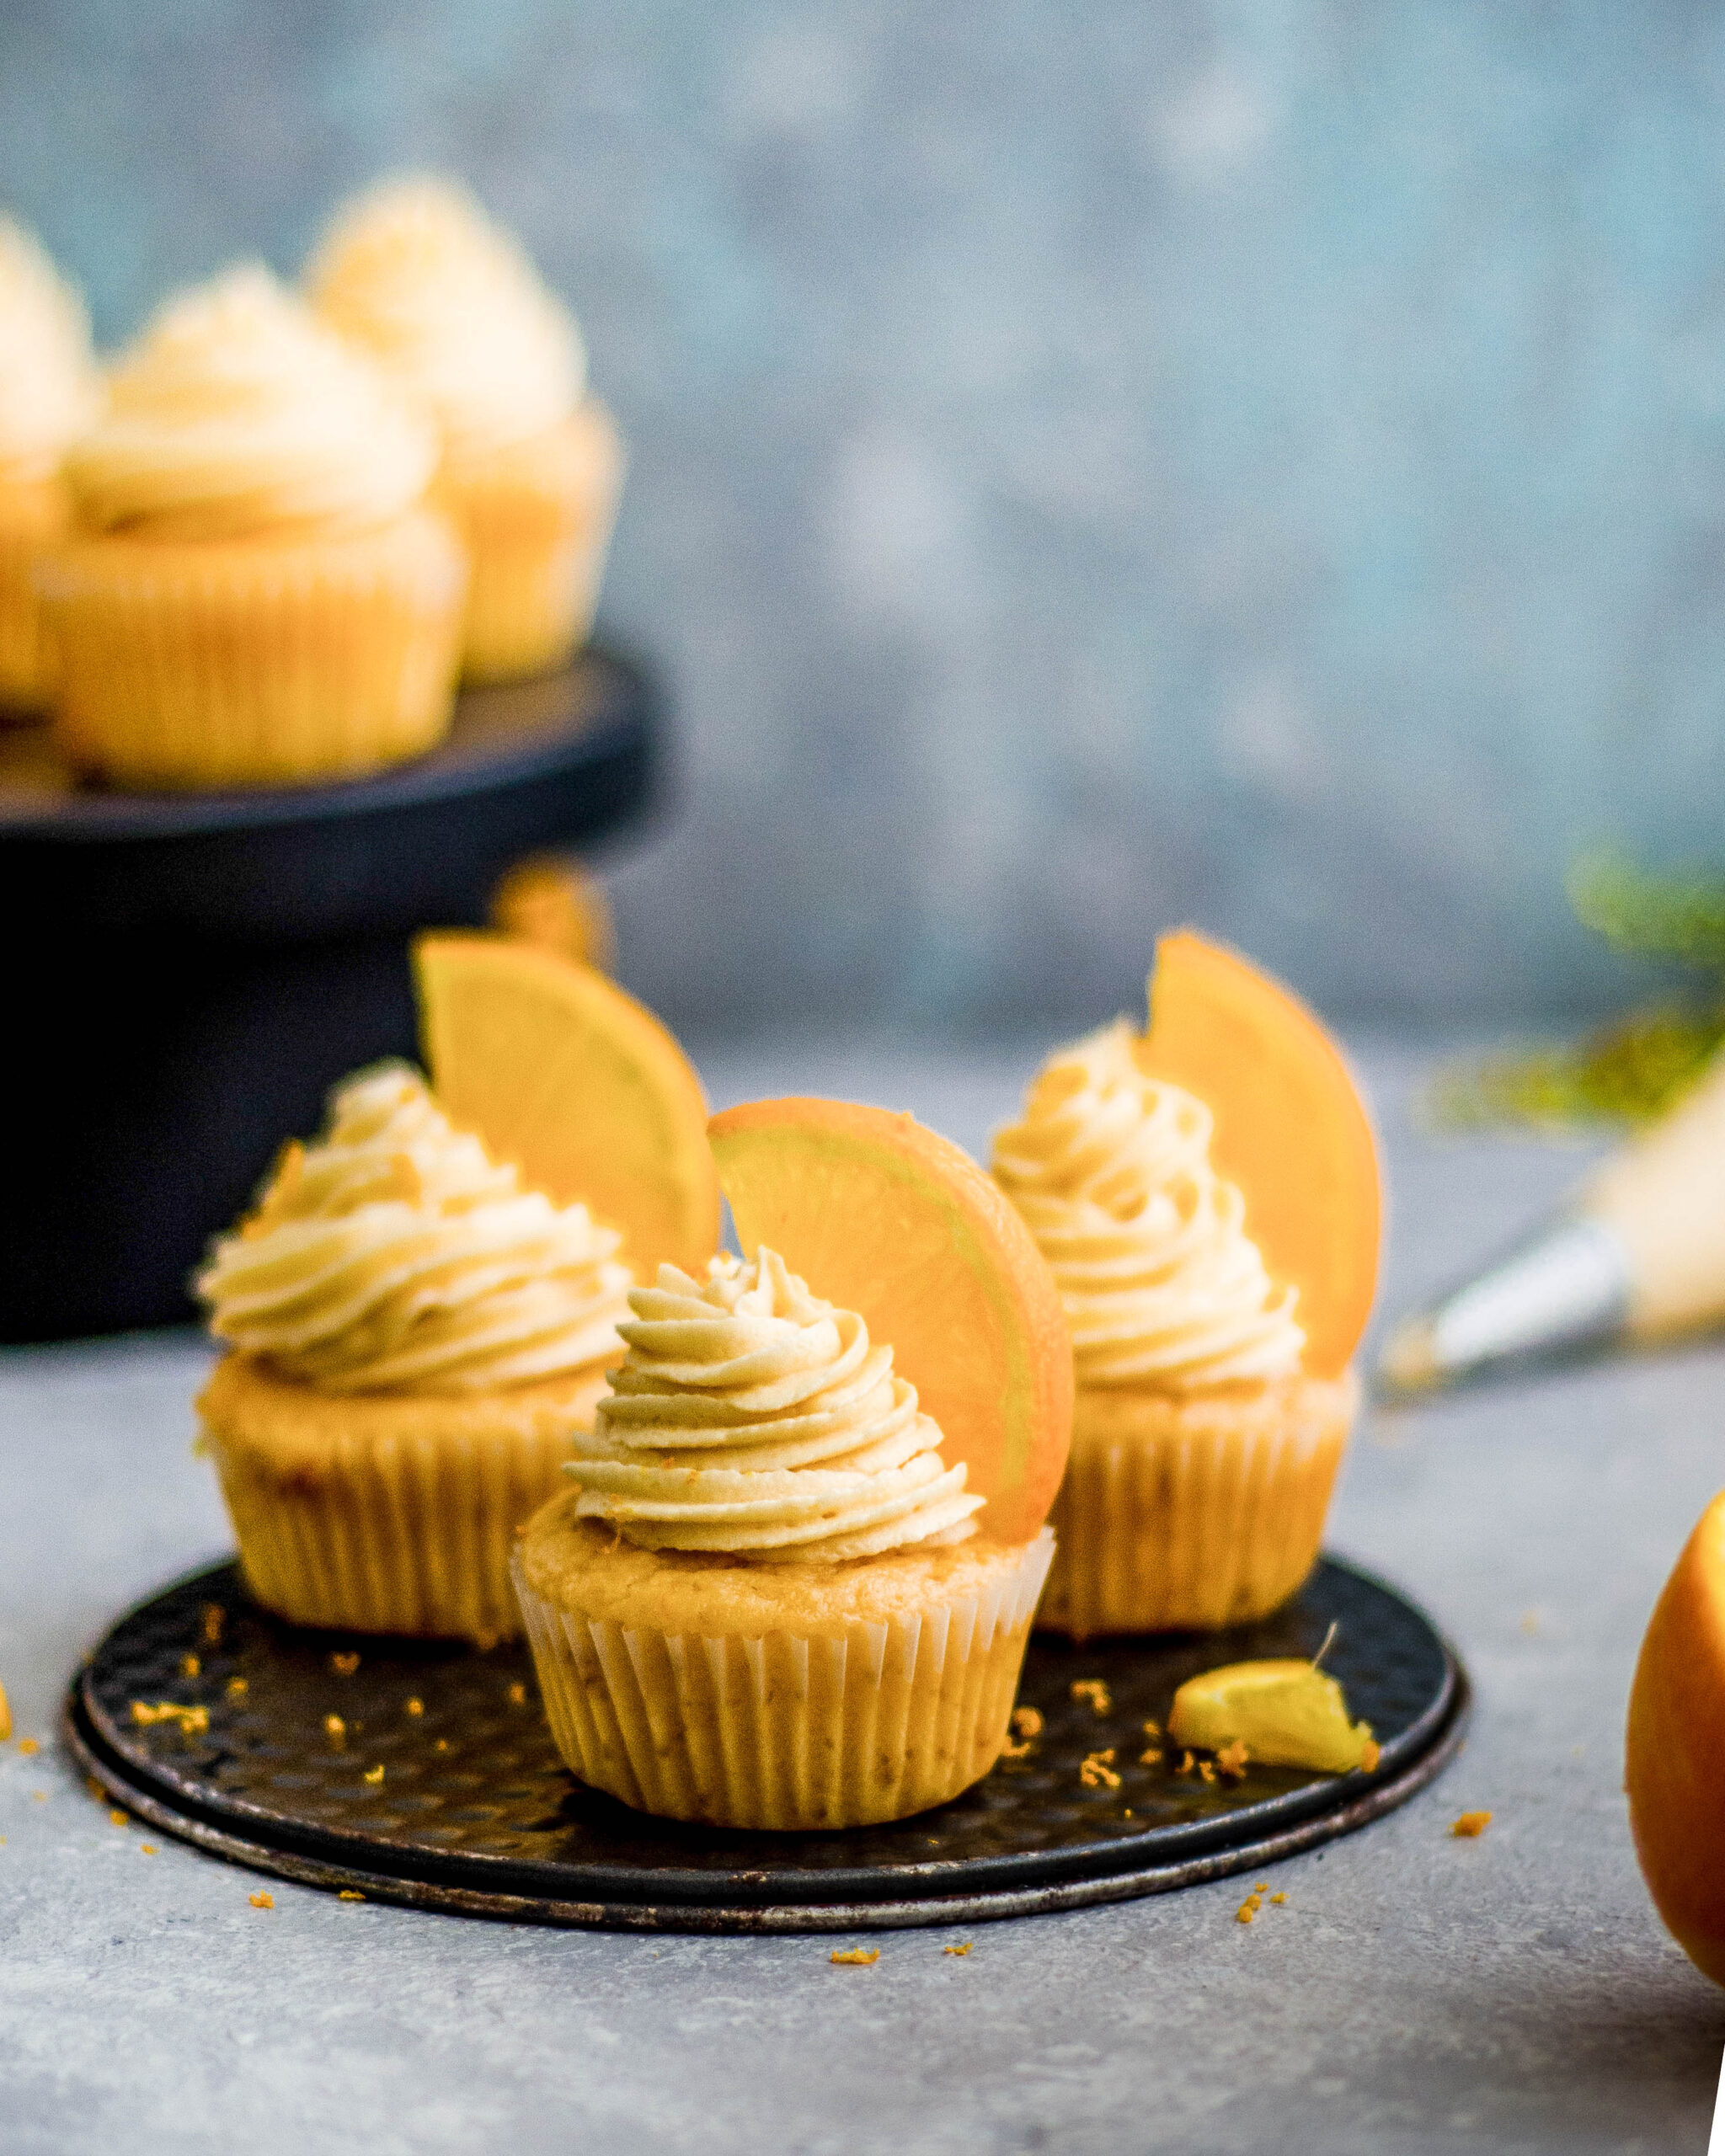 Orange cupcakes, eggless cupcakes, Eggless orange cupcakes, buttercream frosting, Eggless orange cupcakes with buttercream frosting, best baker in bangalore, Easy baking recipes